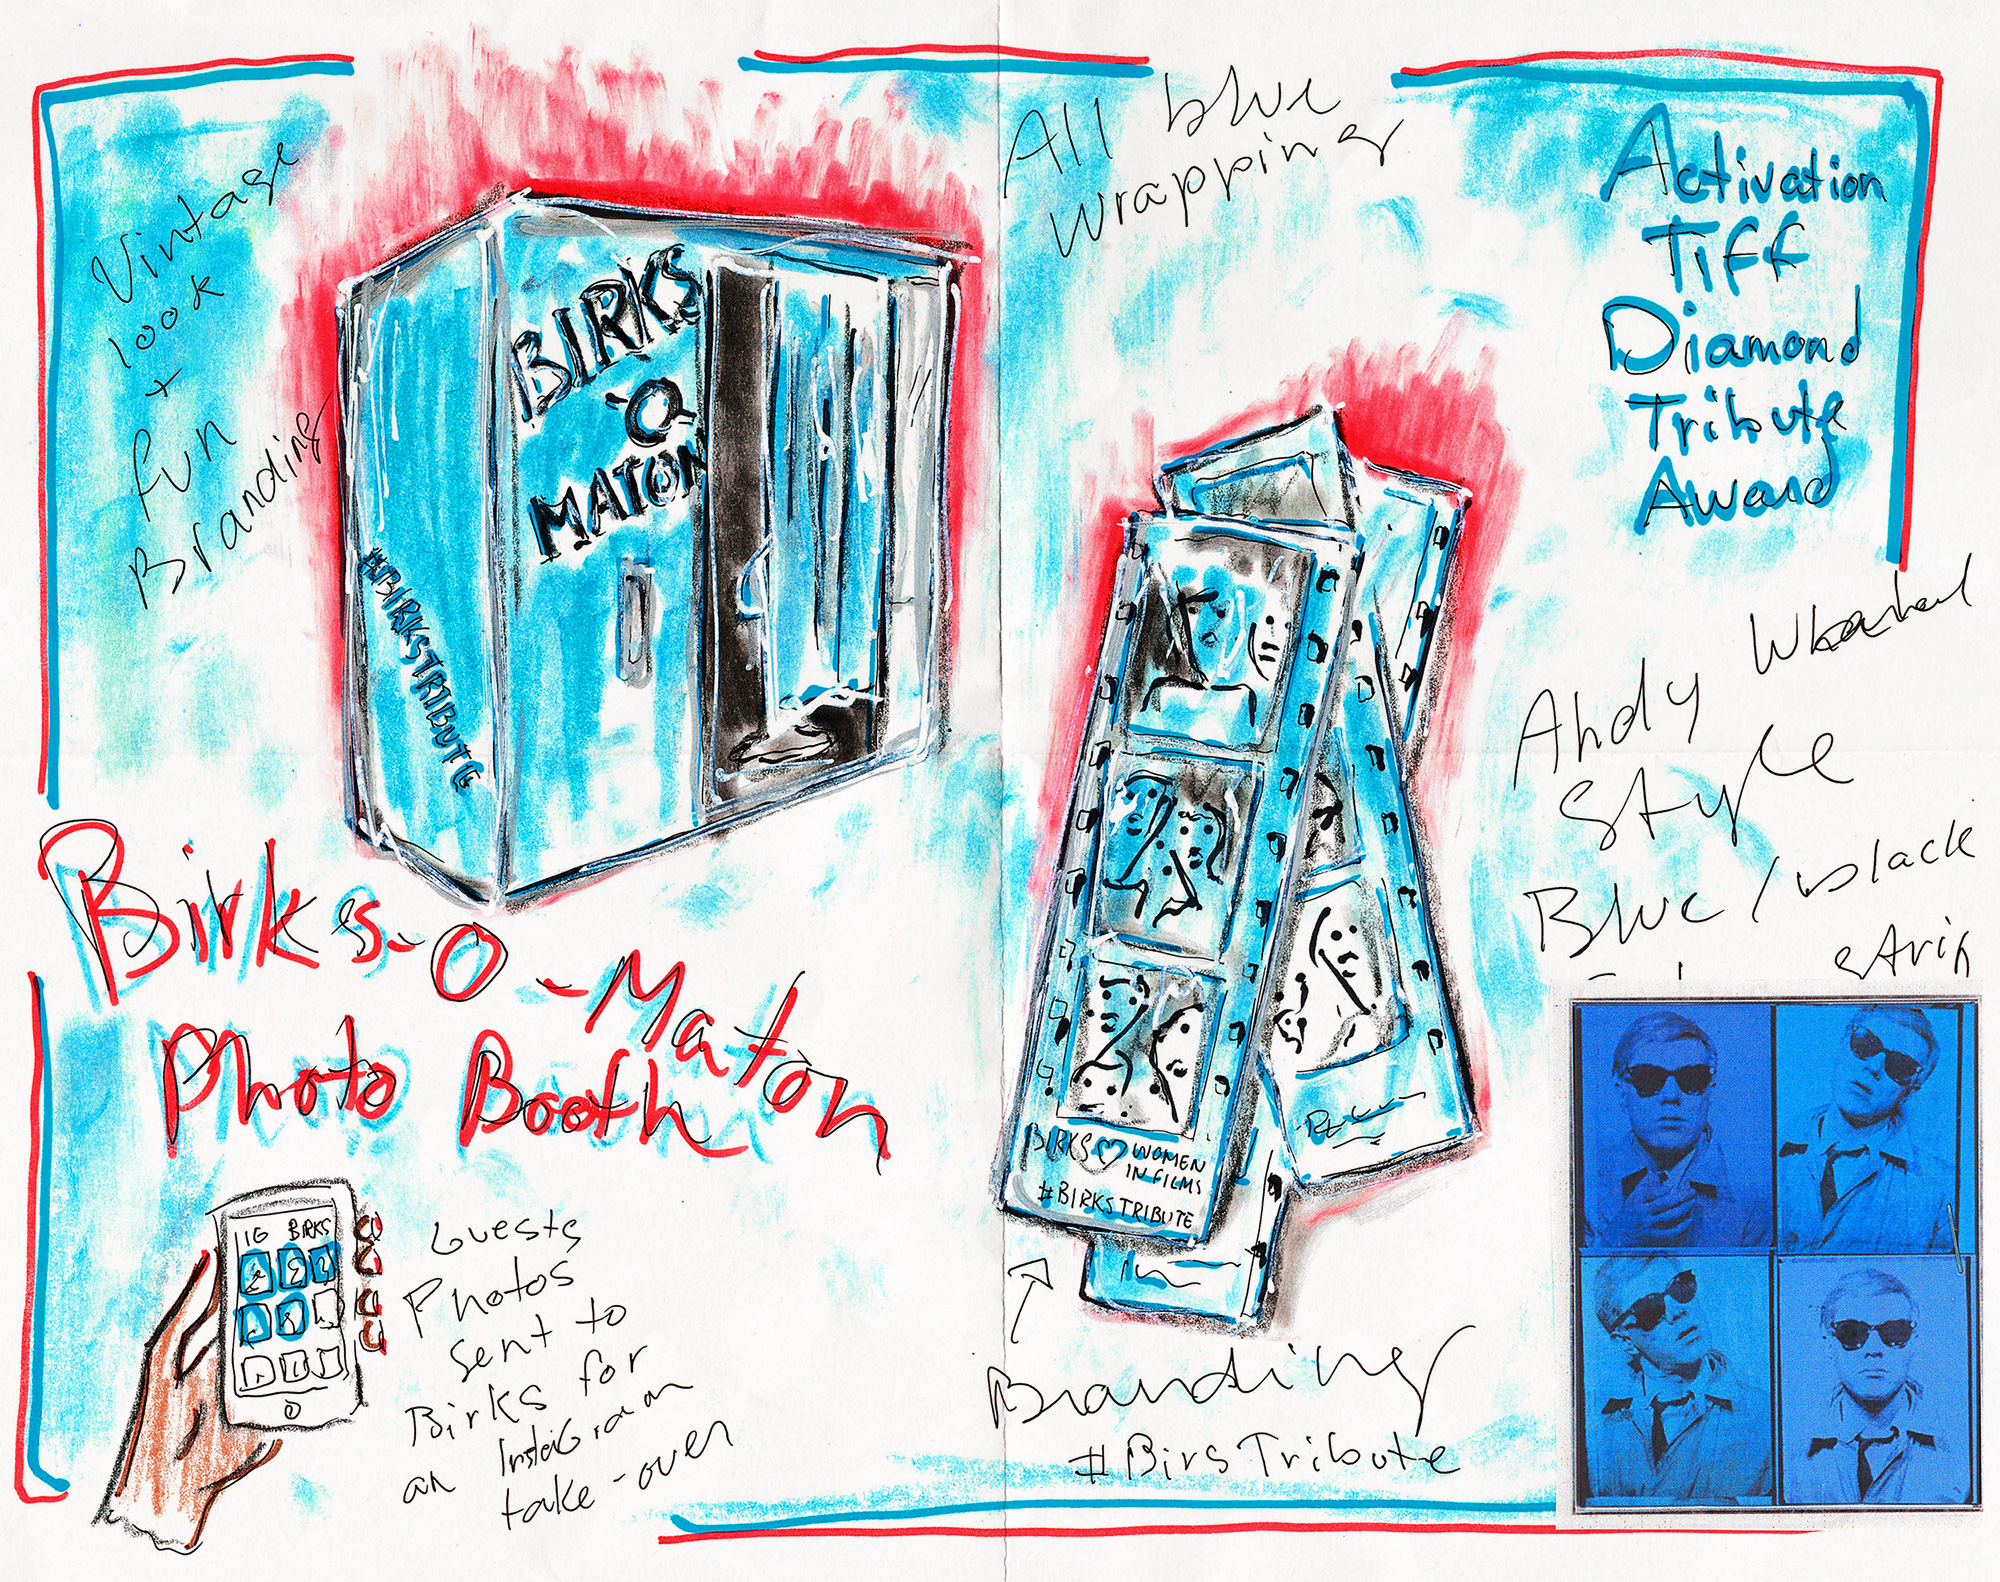 Concept sketch of the Birks Diamond Tribute Award activation at TIFF 2018.